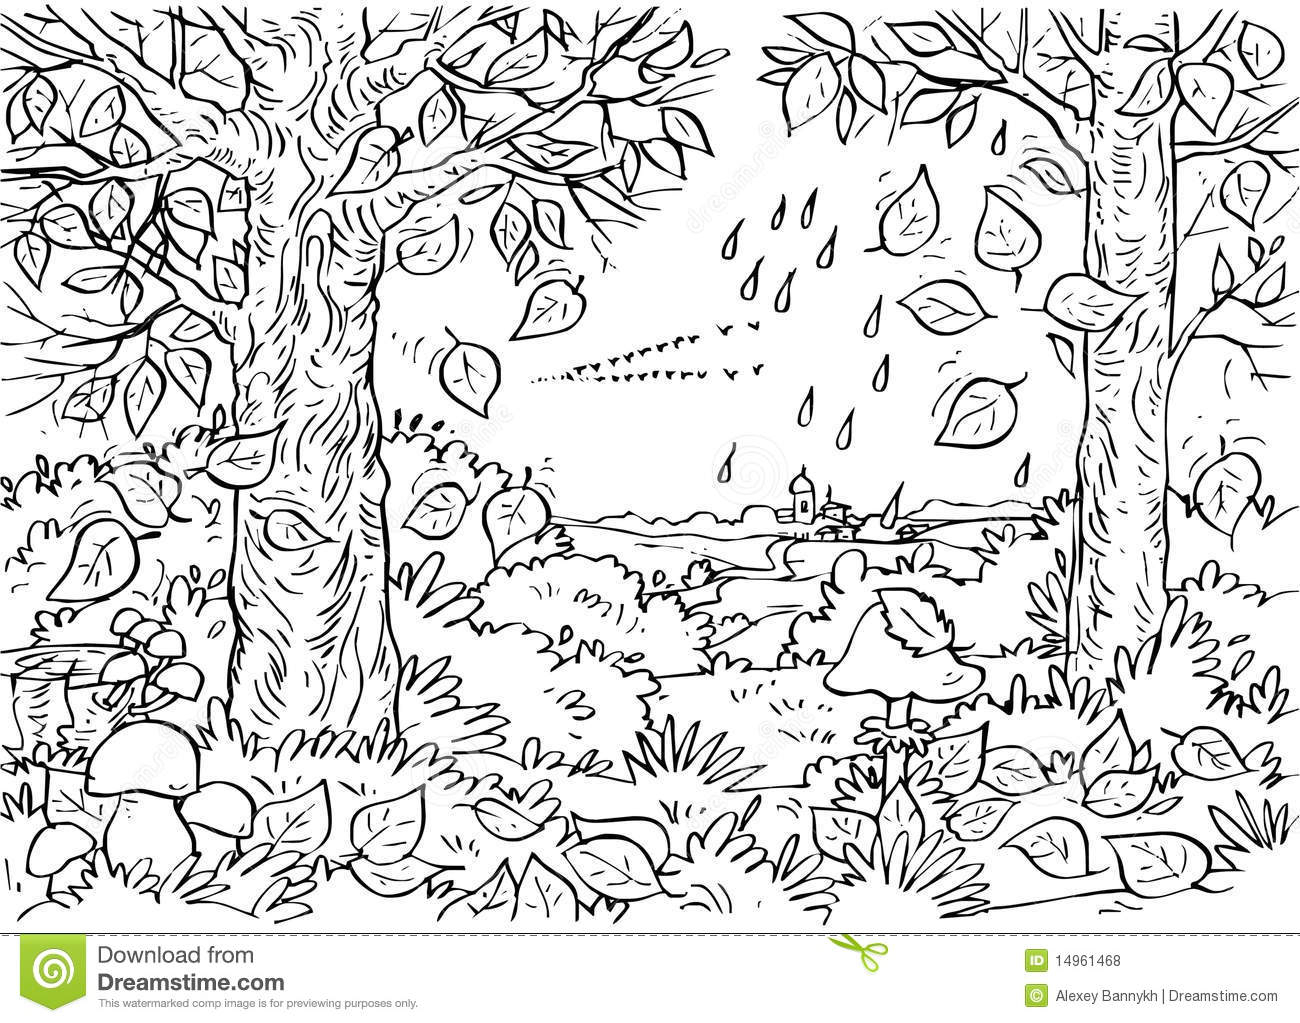 1963 Rainforest free clipart.